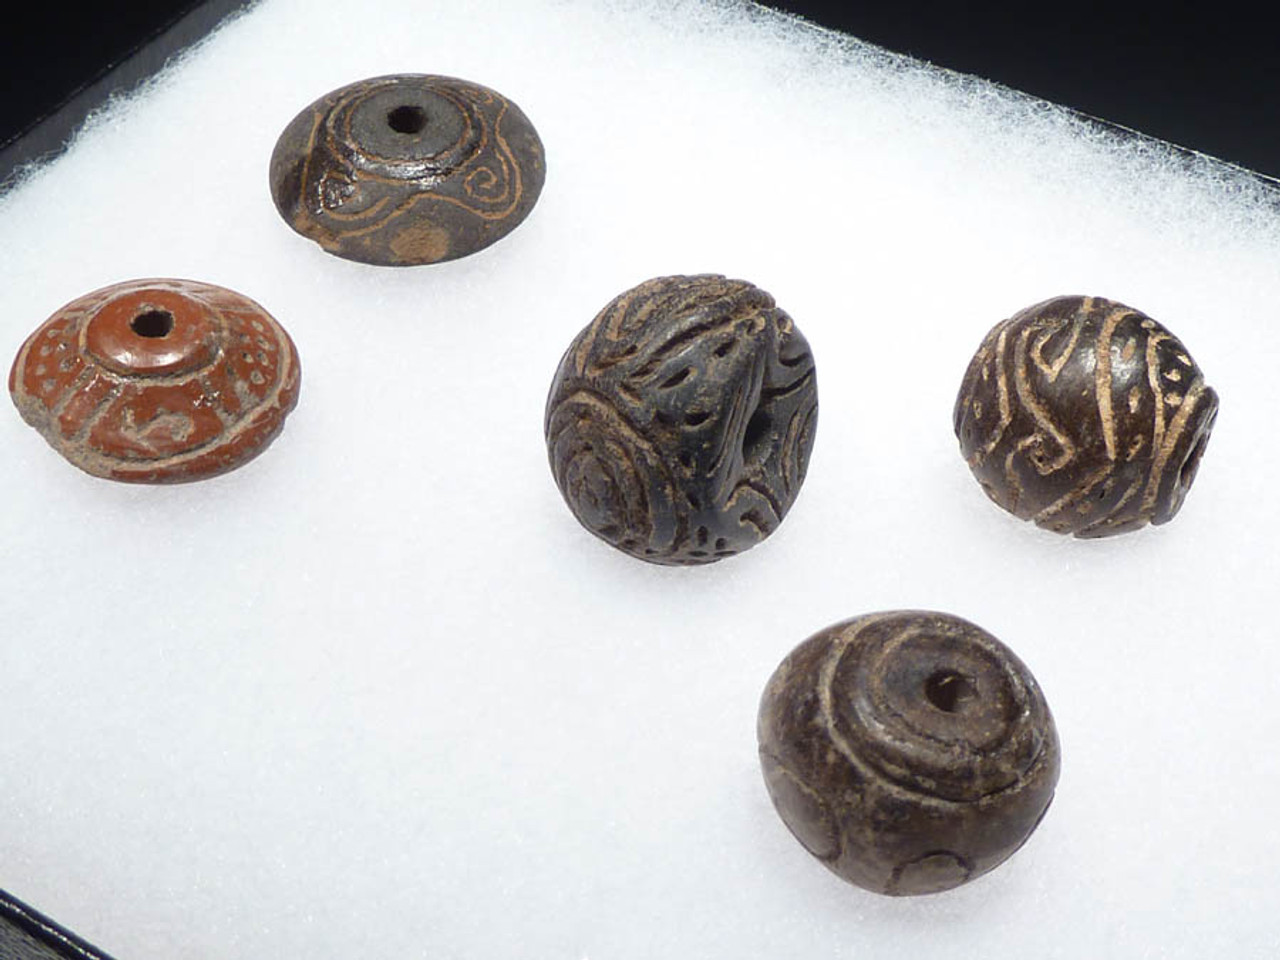 PC042 - FIVE PRE-COLUMBIAN STONE AND CERAMIC LARGE DECORATED BEADS FROM THE ANCIENT CHIMU CULTURE OF SOUTH AMERICA